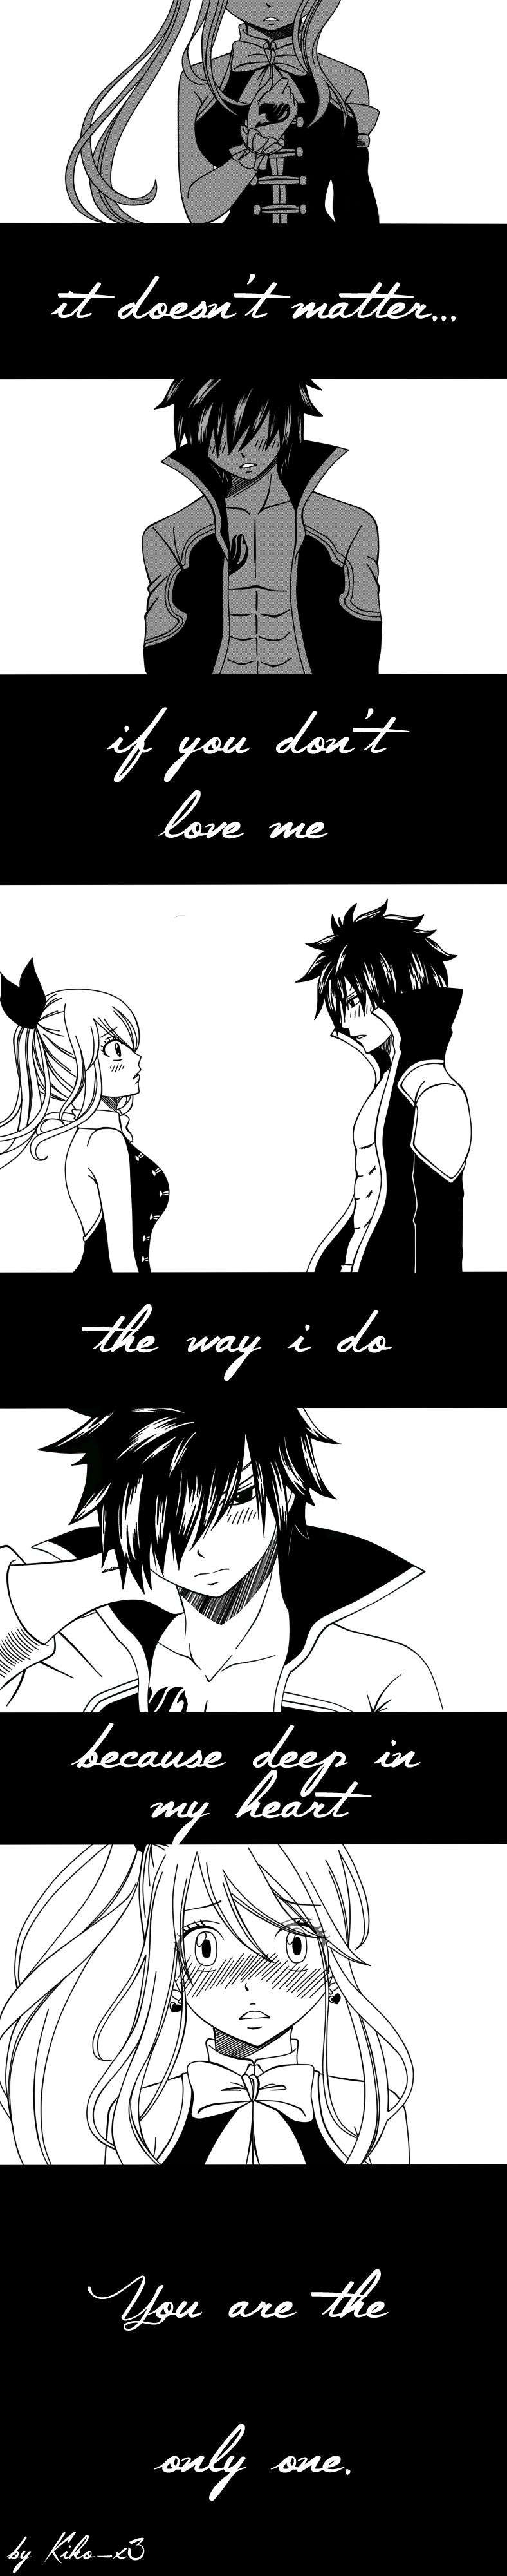 Gray x Lucy kiss animation by Milady666 on DeviantArt